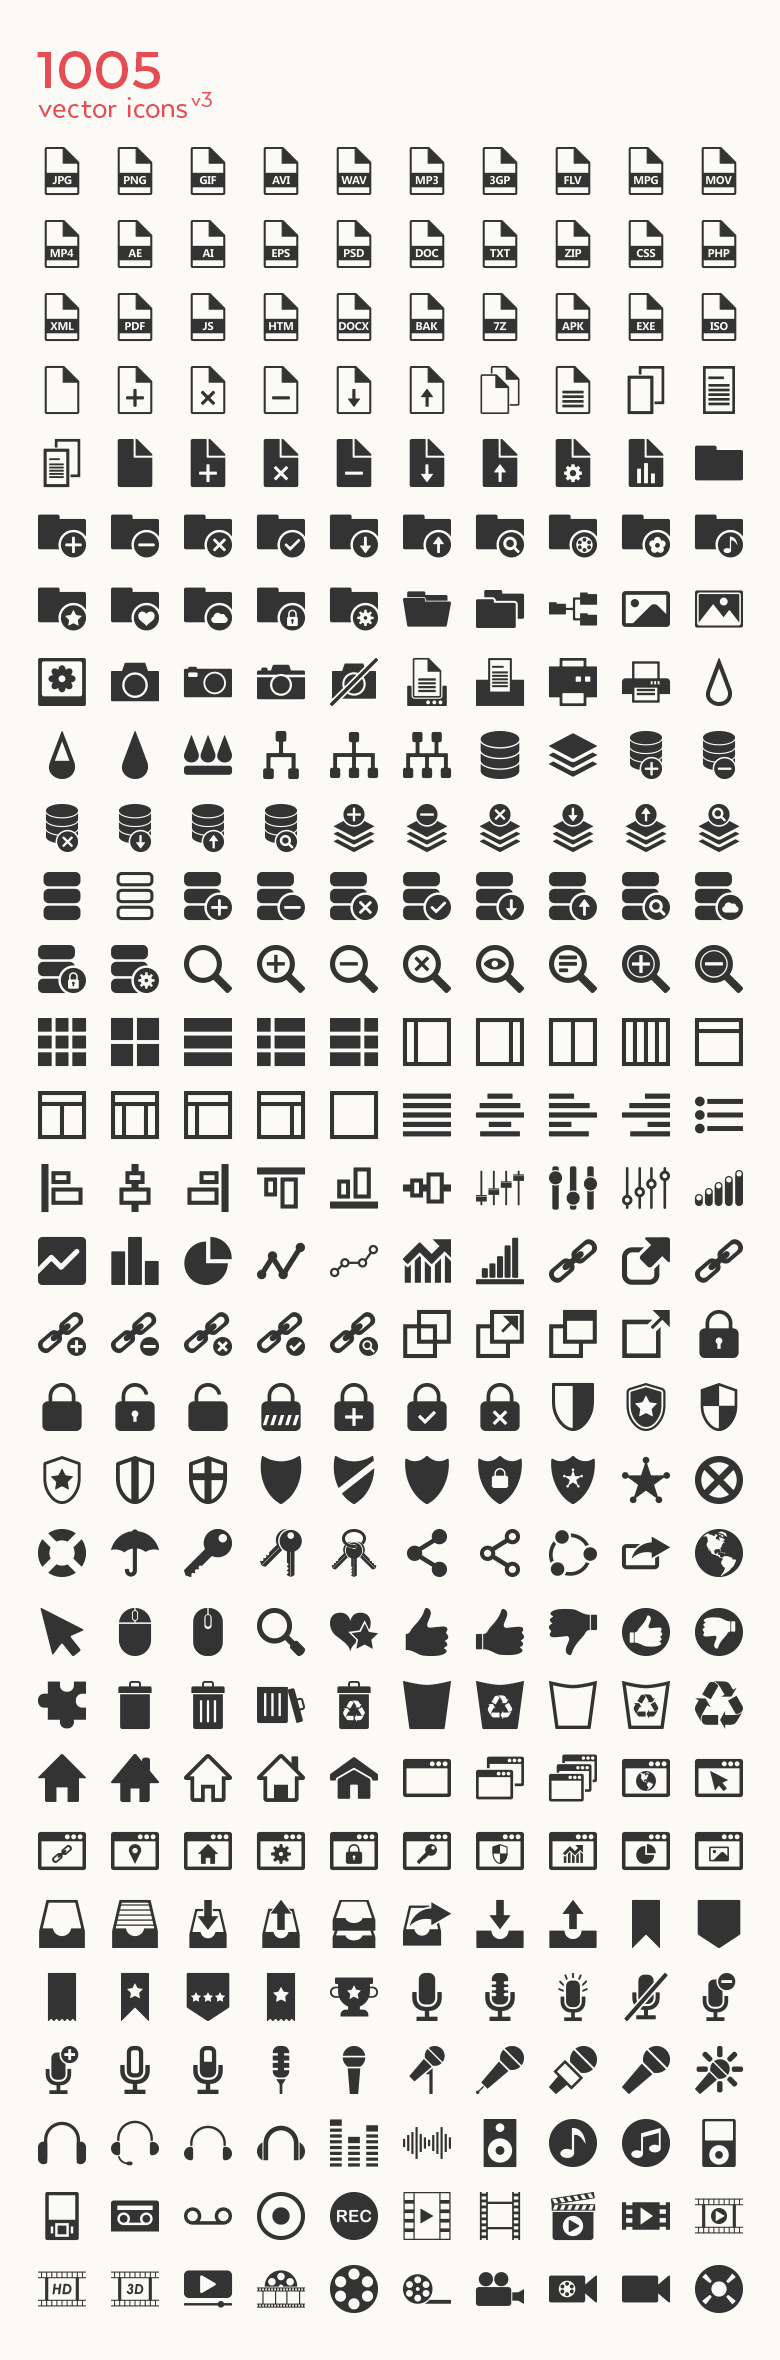 1005-vector-icons-preview-3-b